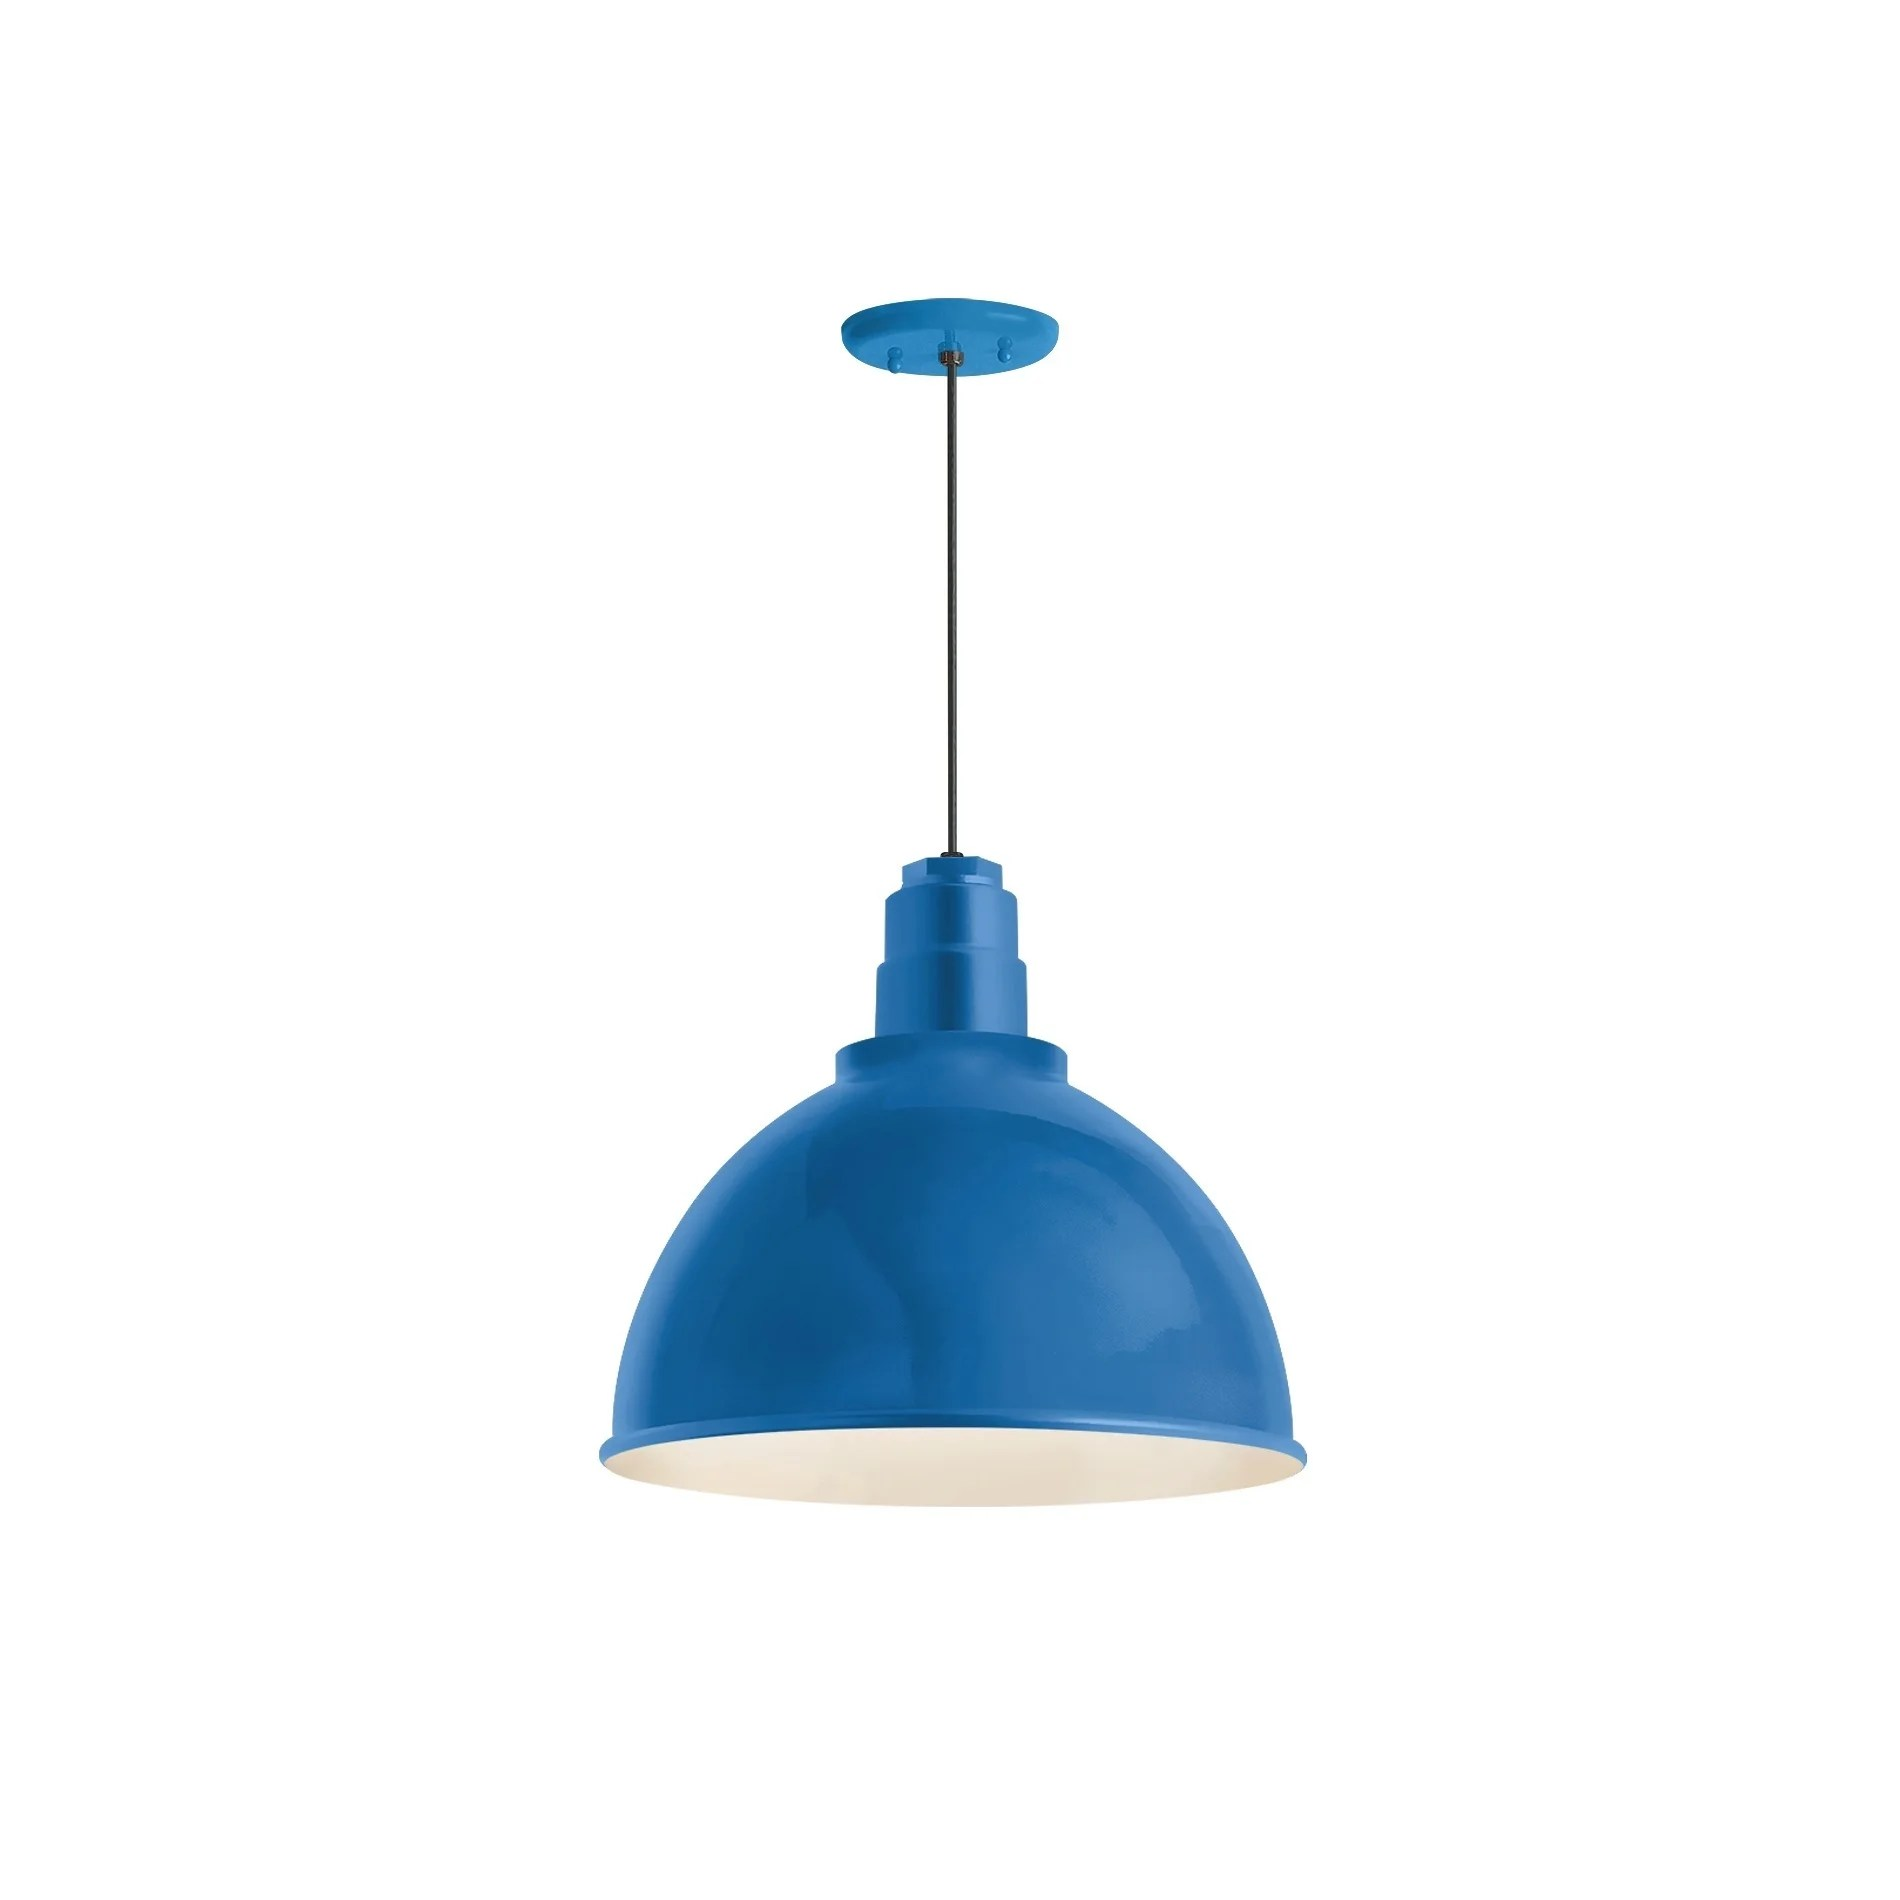 Troy RLM Lighting Deep Reflector Blue Pendant, 12 inch Shade